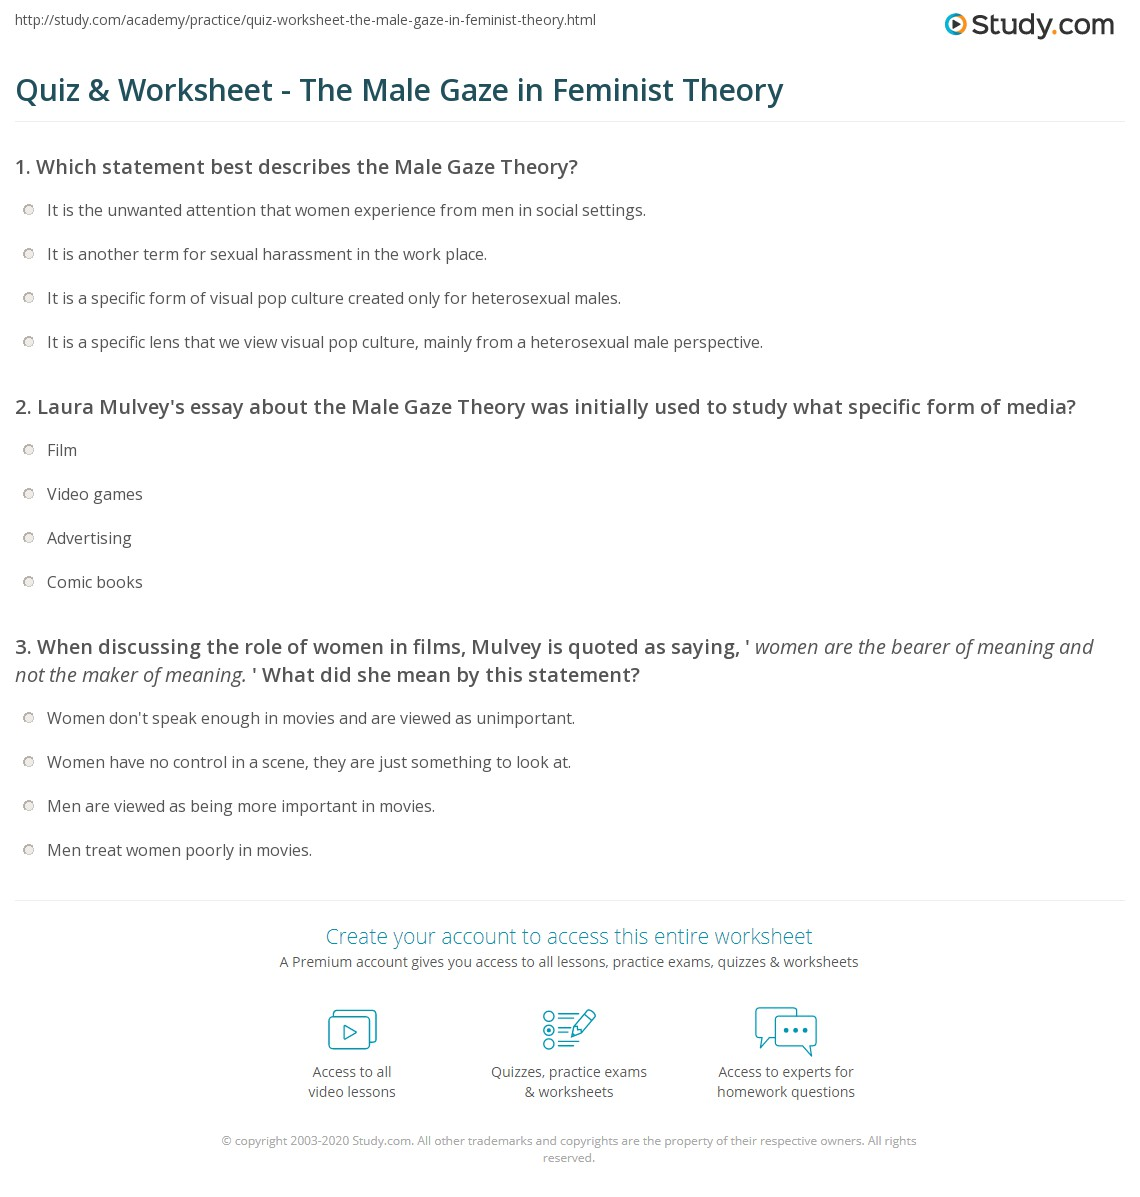 quiz worksheet the male gaze in feminist theory com laura mulvey s essay about the male gaze theory was initially used to what specific form of media